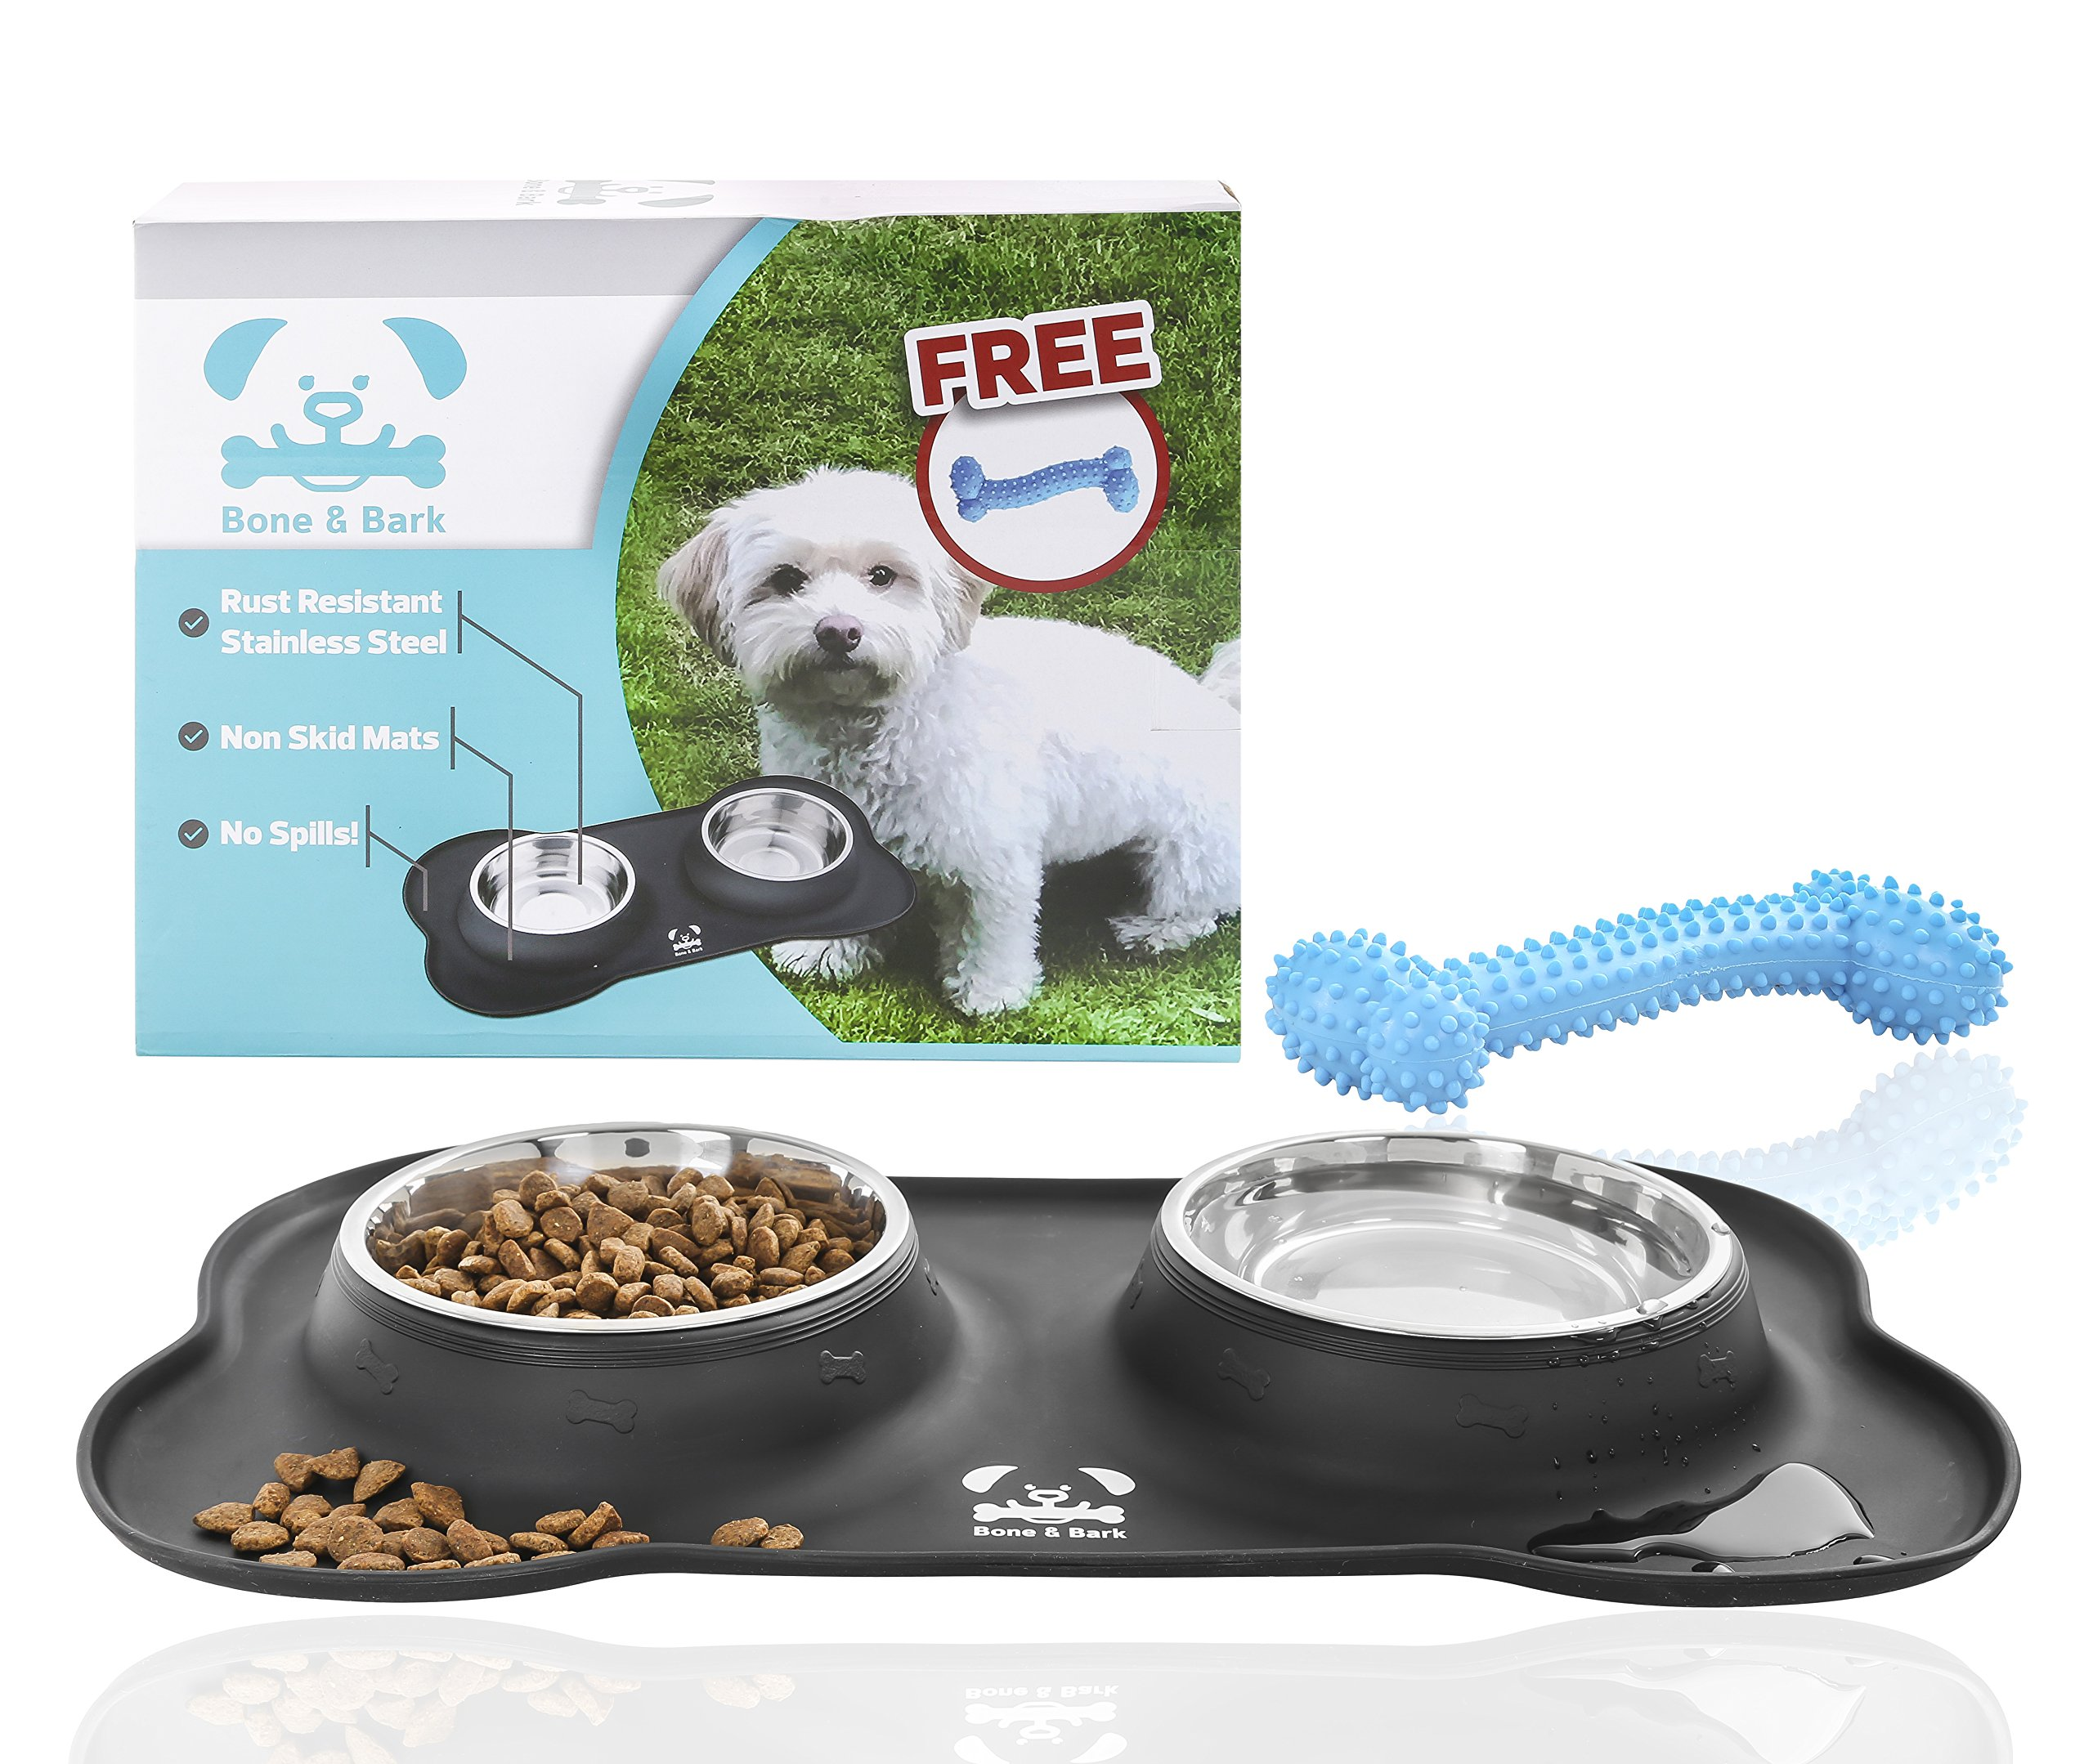 No Spill Dog Bowls by Bone&Bark - Non Skid Mat with Stainless Steel Bowls and Bonus Chew Toy - Perfect Feeding Tray for Small Dogs and Puppies - Untippable Holder Prevents Food, Water Spills and Mess